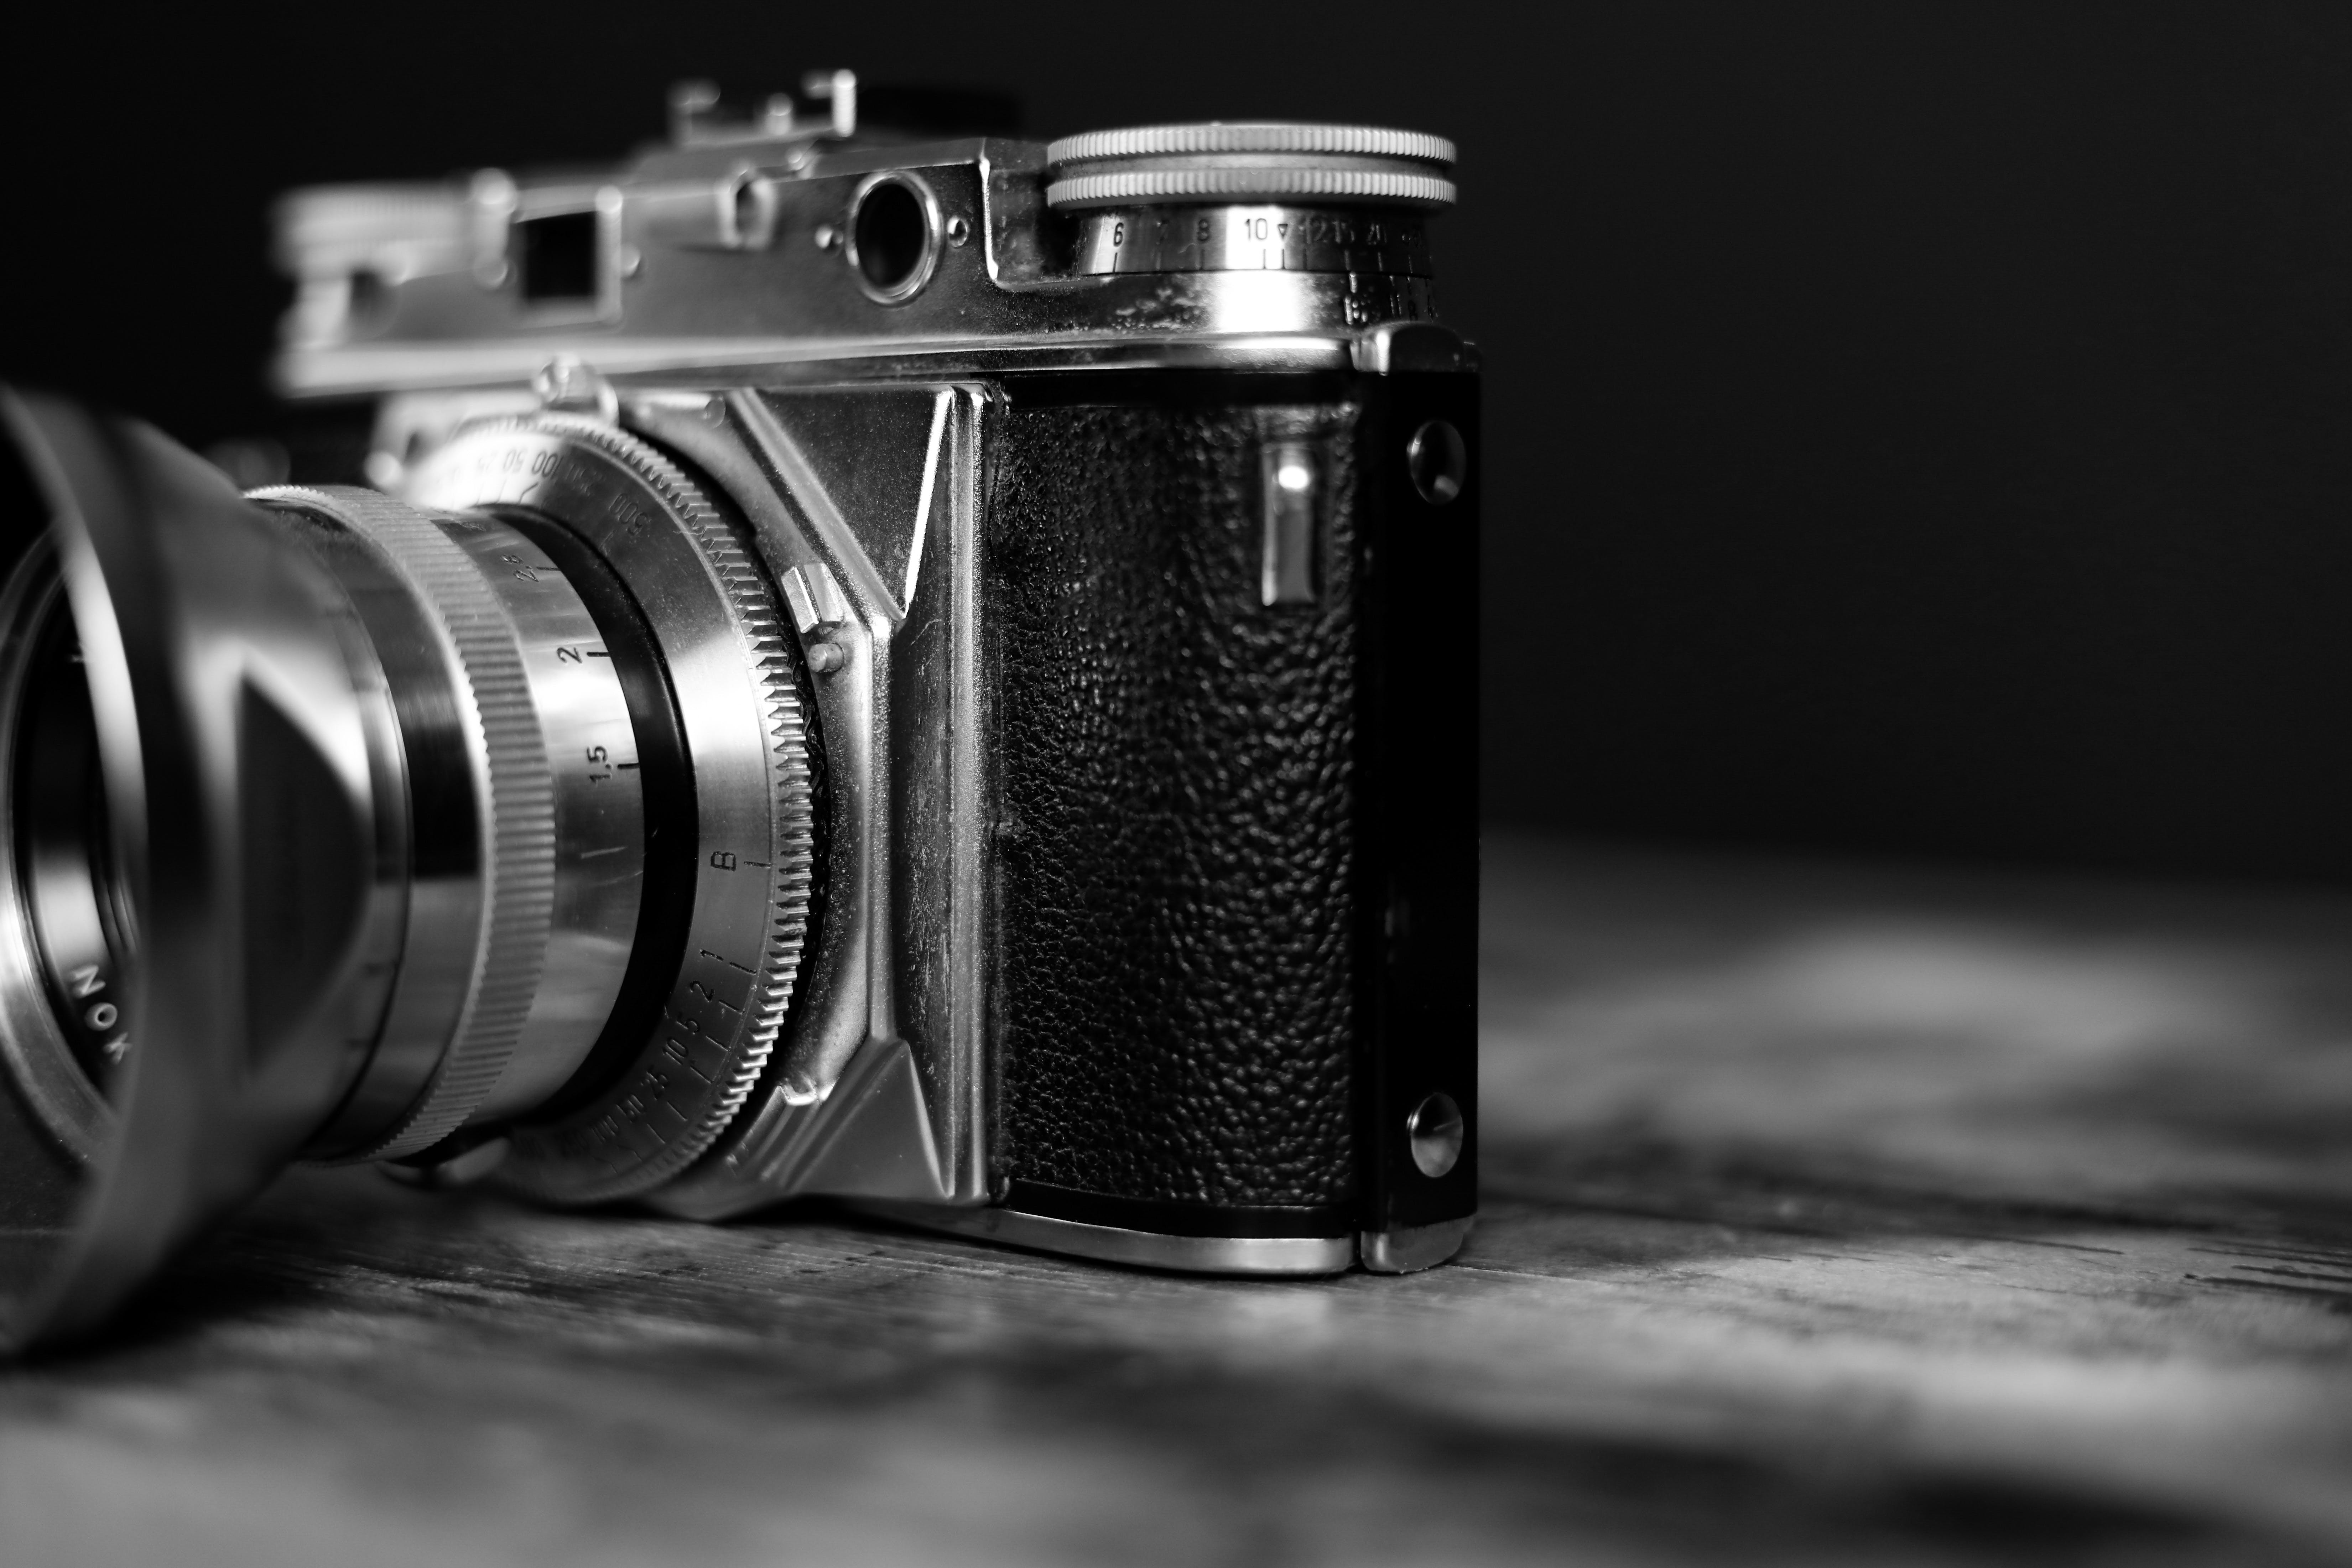 Monochrome Photography of Camera